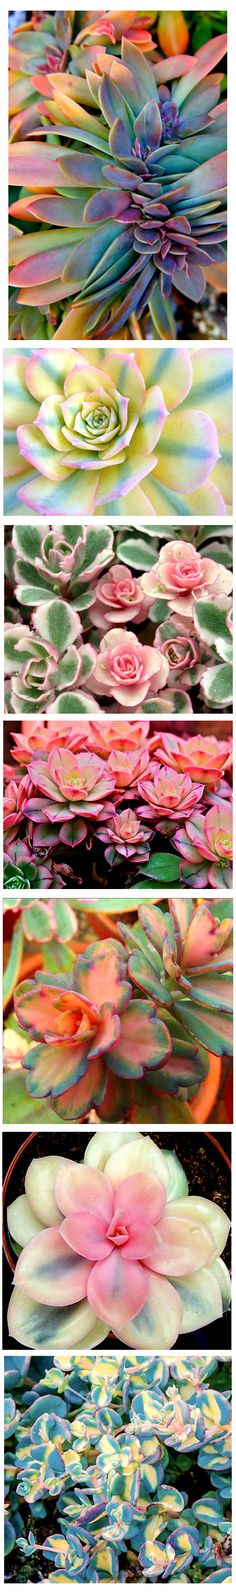 Variegated Succulents would love to have some of these